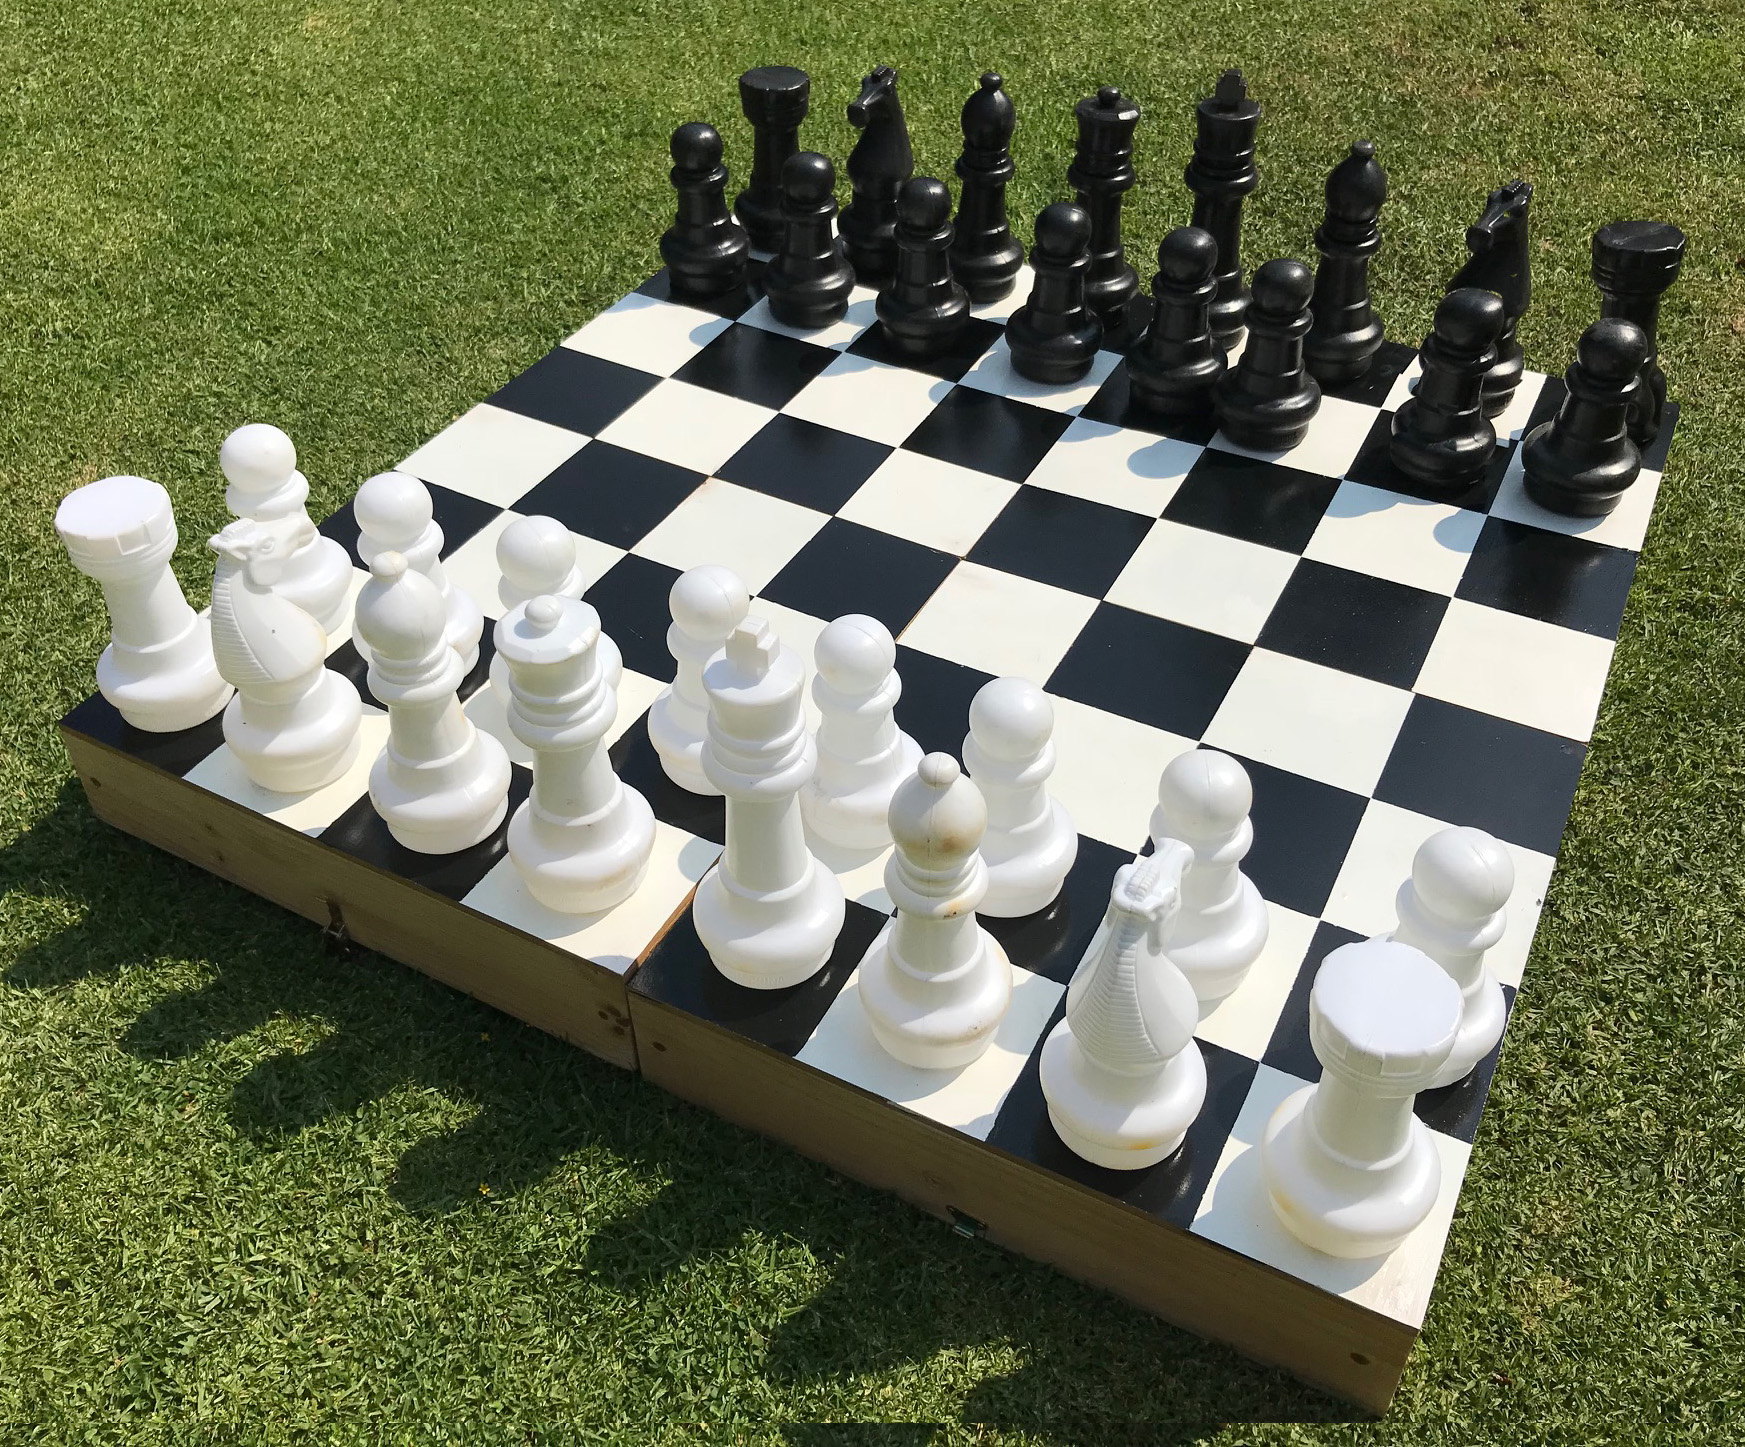 Giant Chess Garden Game Available For Hire In Johannesburg